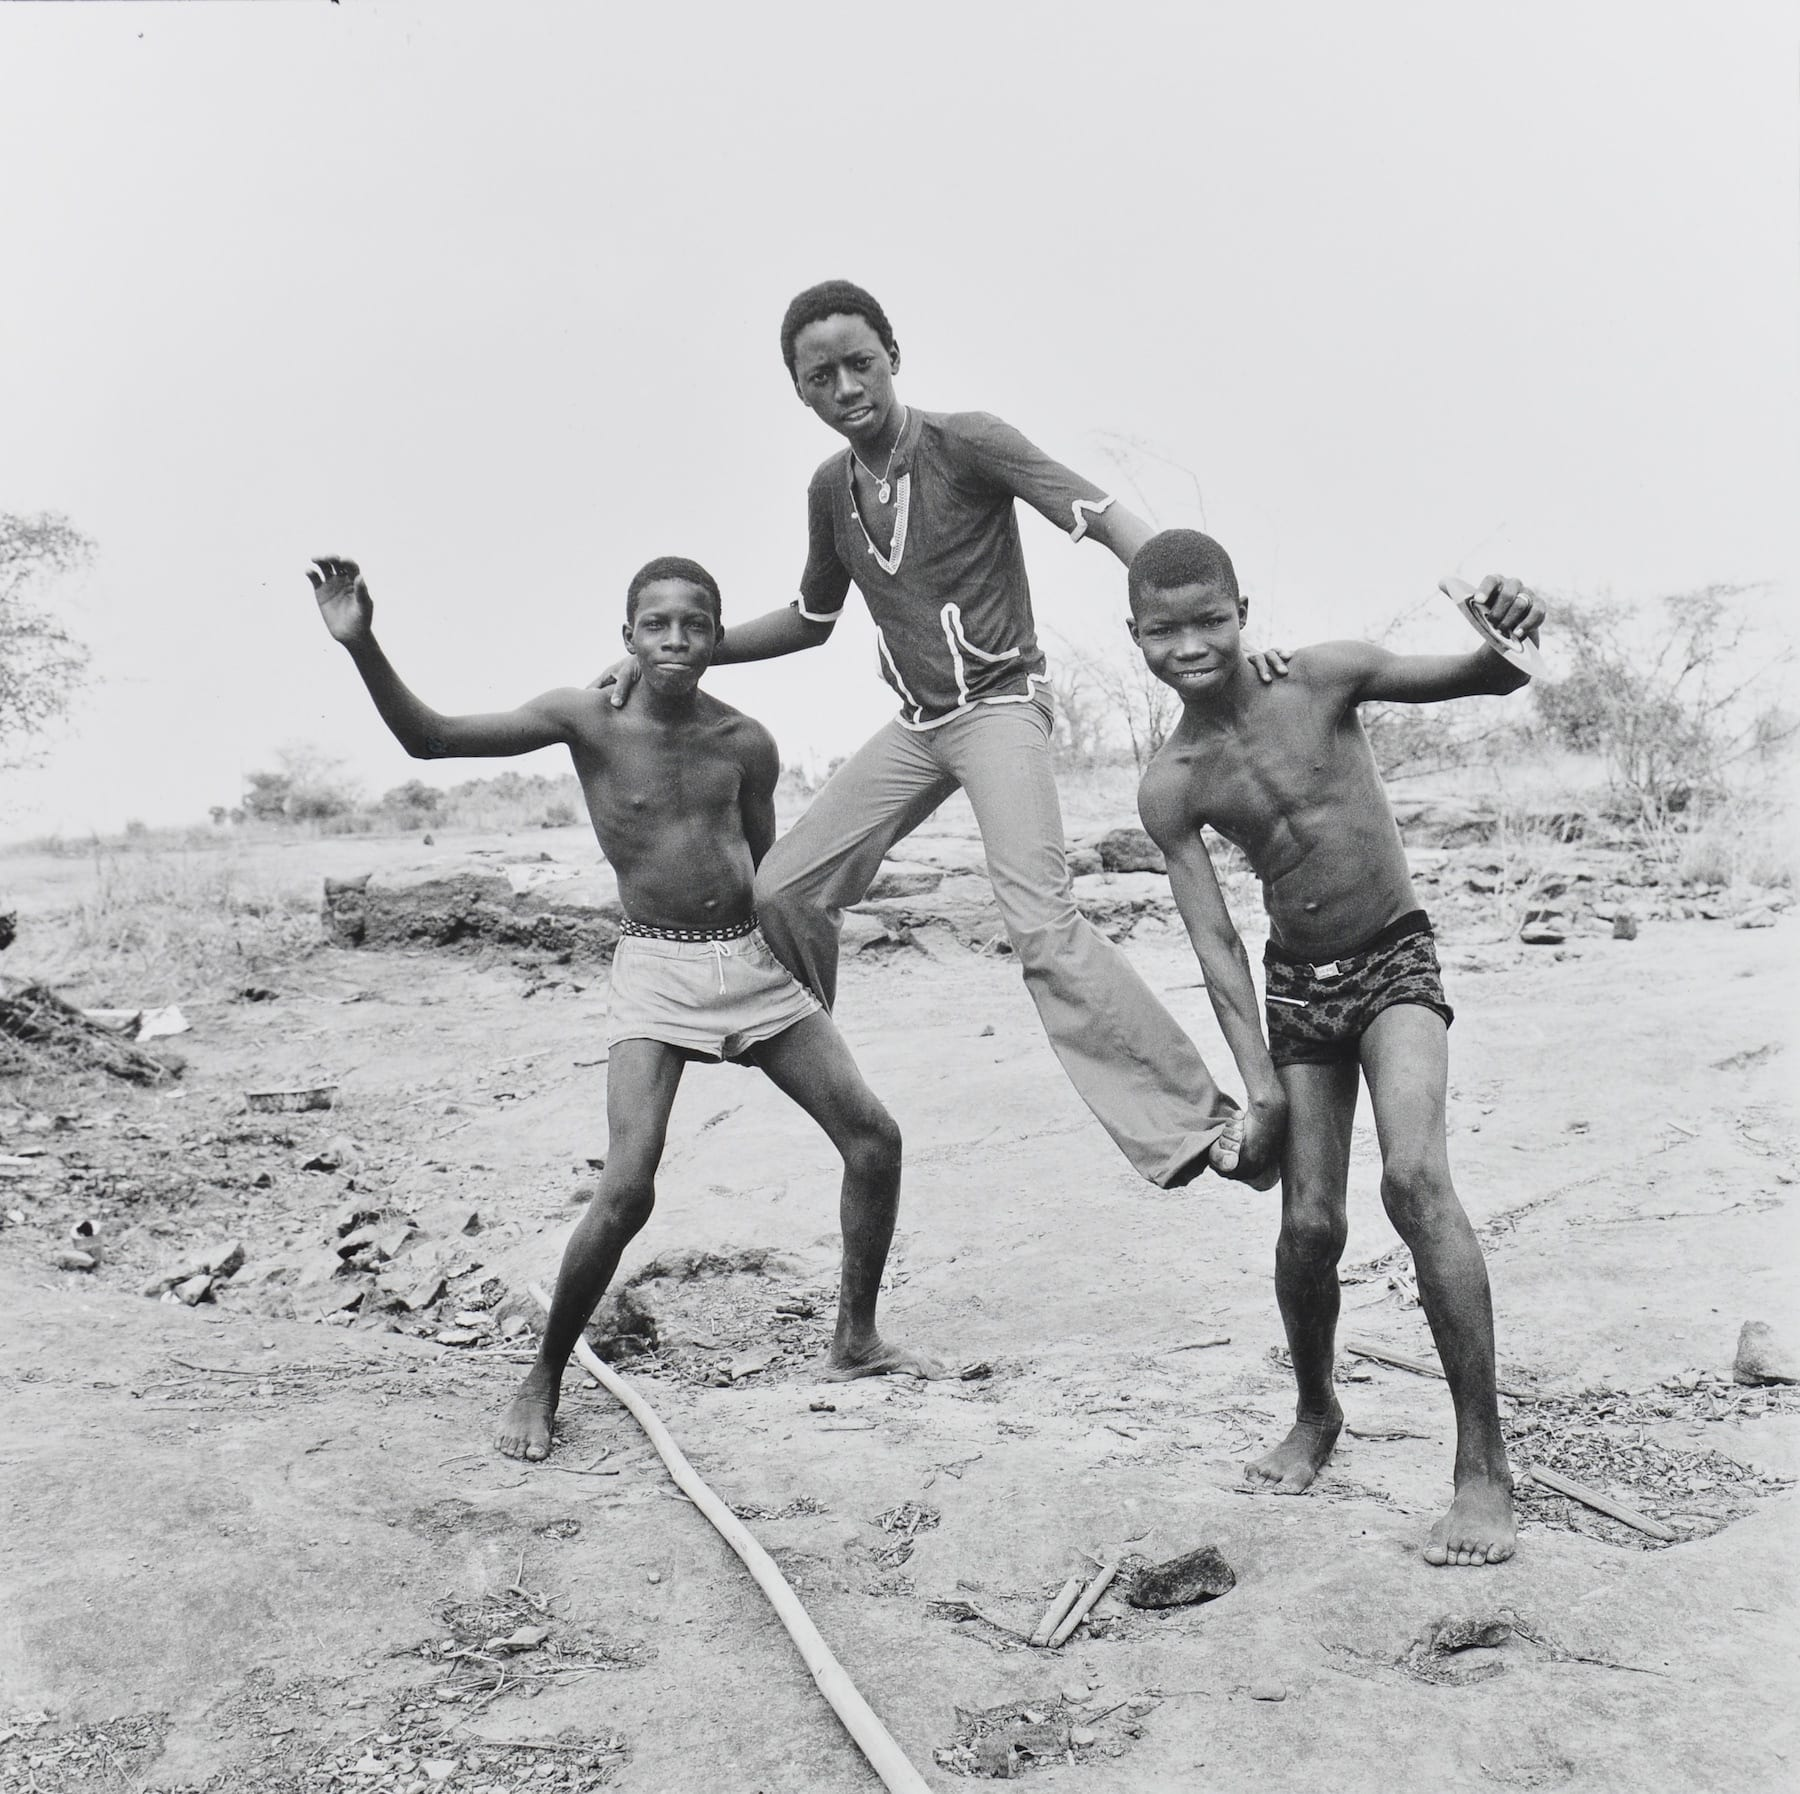 Malick Sidibe-On the Shores of the Niger-HackelBury Fine Art-black and white photograph of three people making a pyramid on the beach